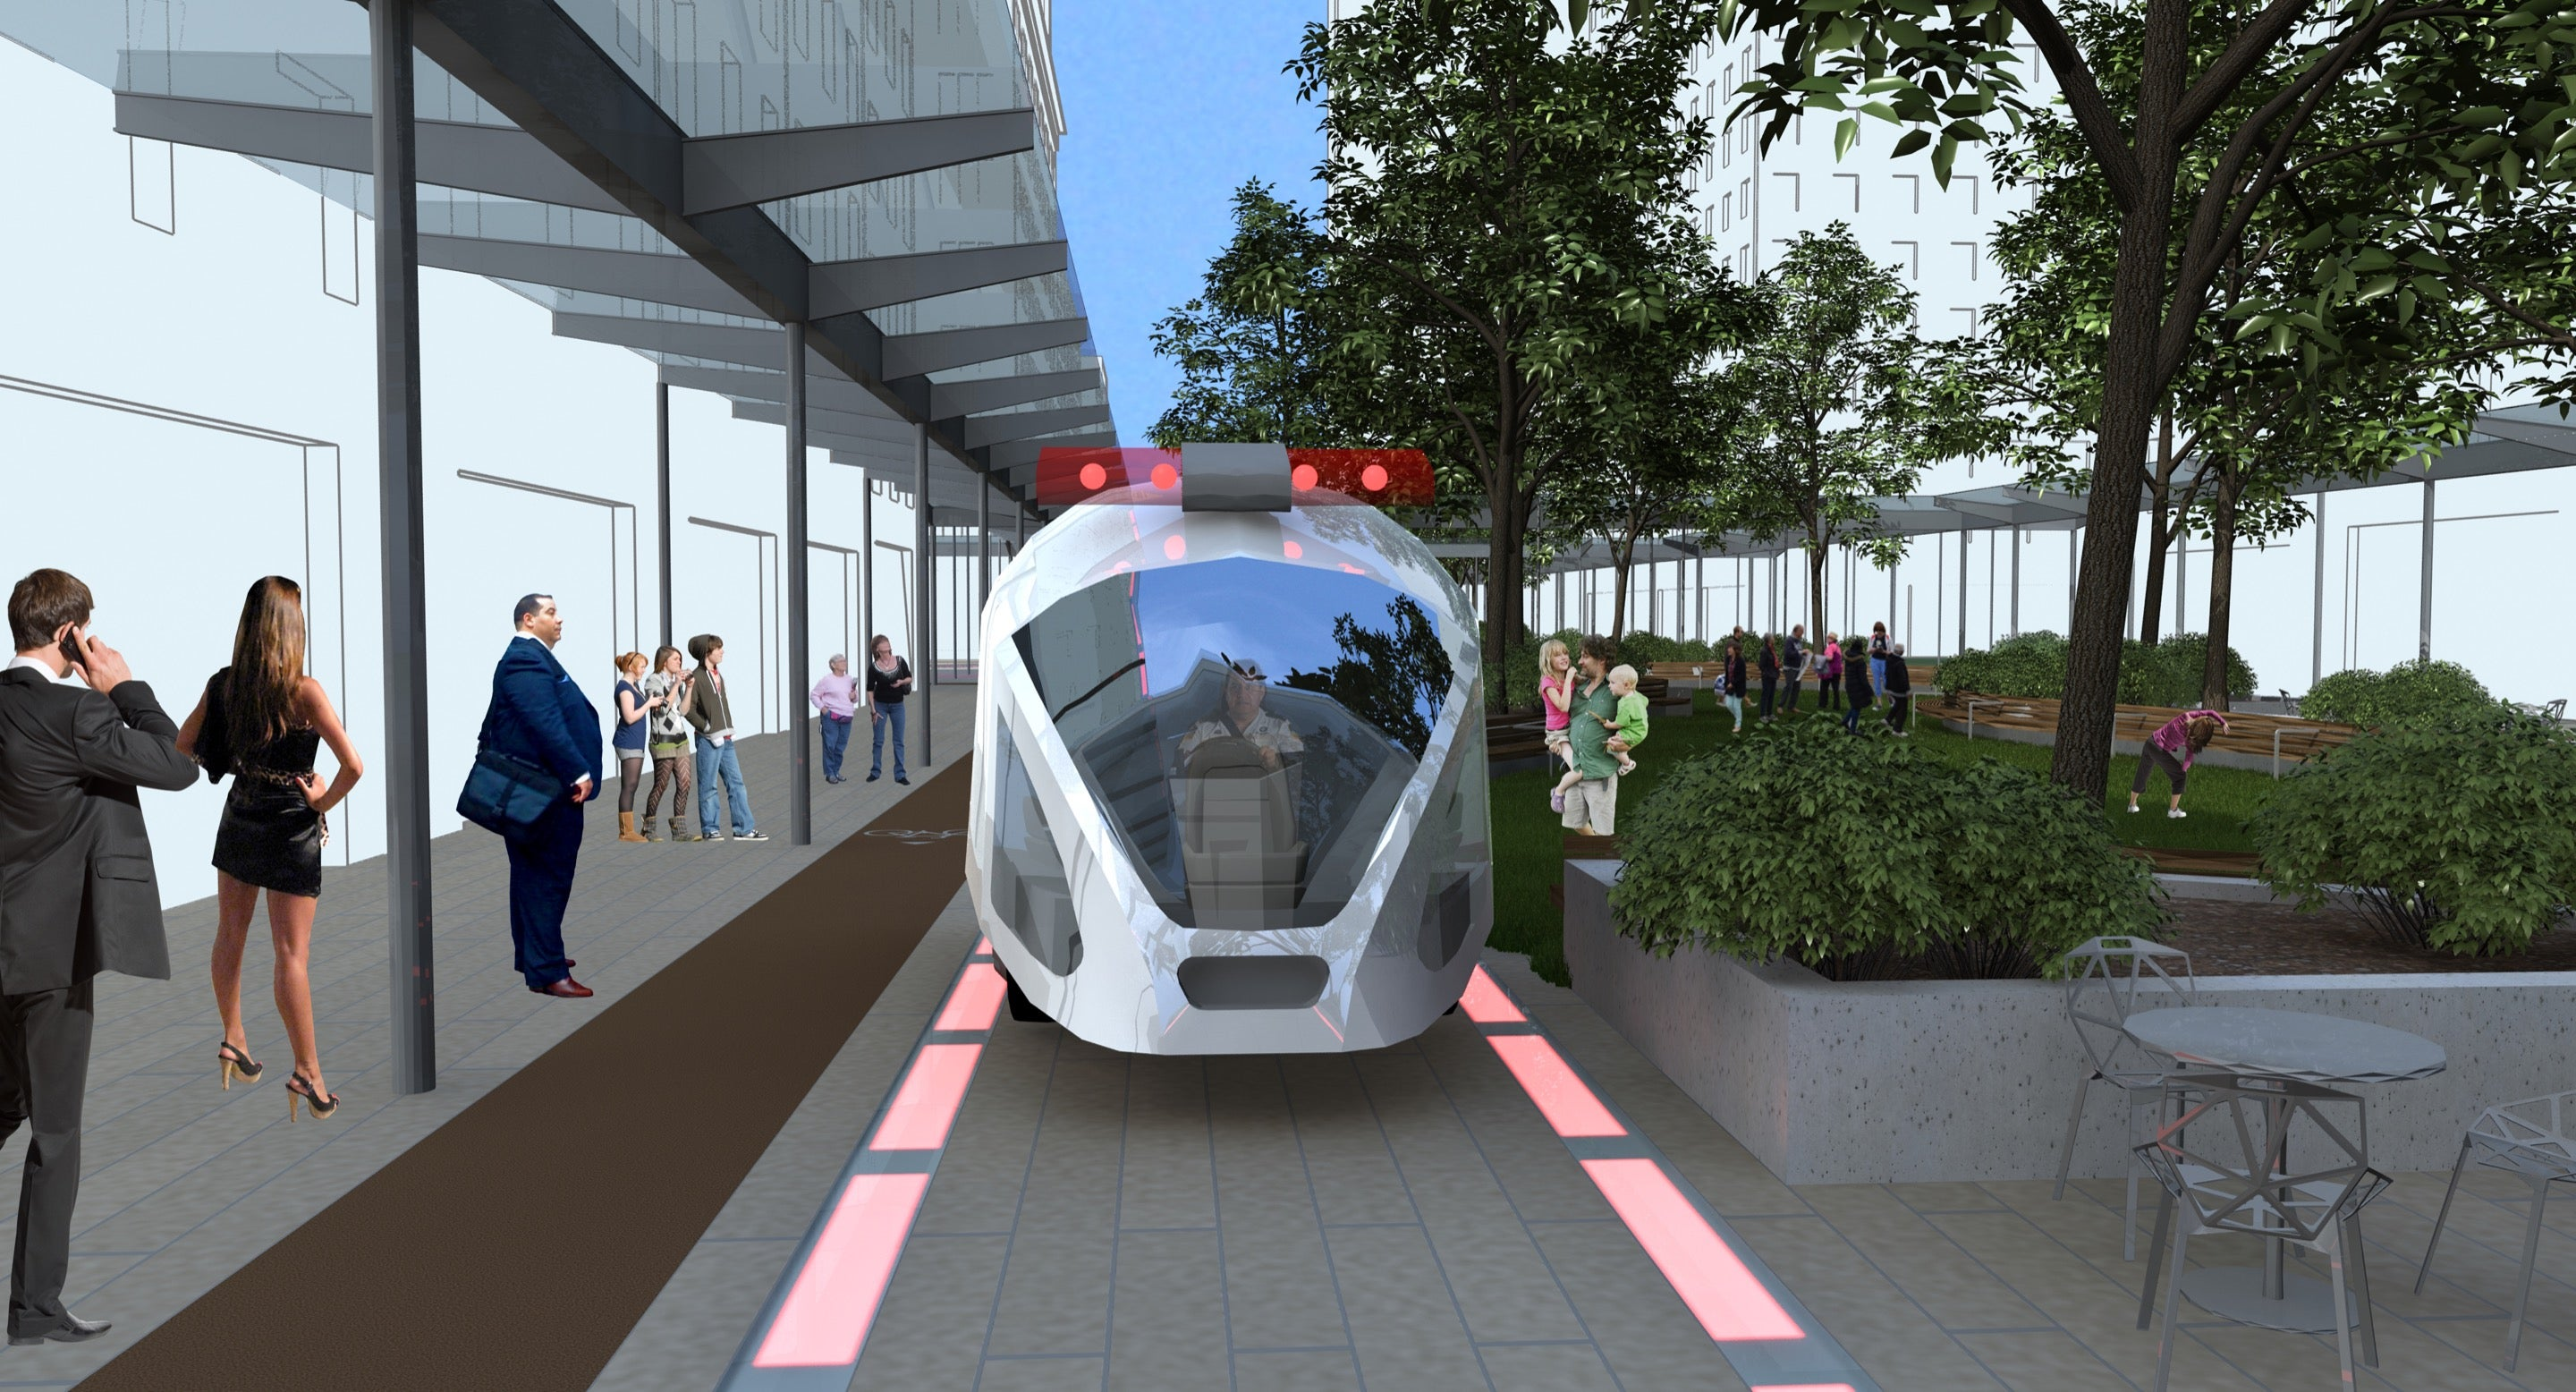 7 Big Ways Our Cities Will Improve When Driverless Cars Hit the Streets